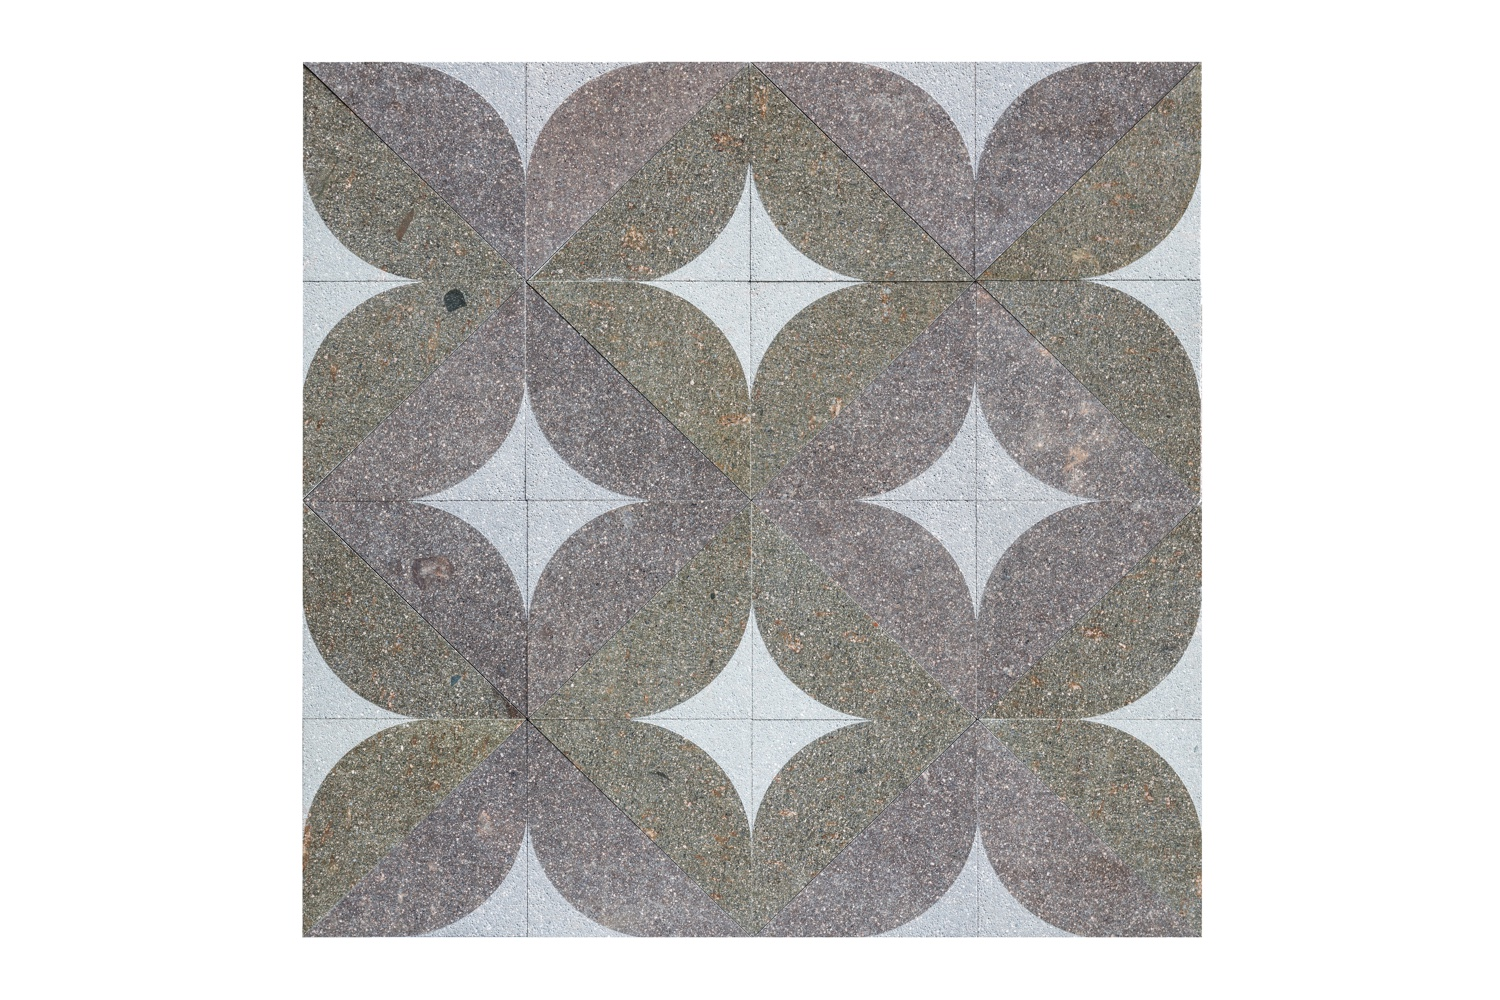 Marquetry tile by Giles Miller and Euro Porfidi.